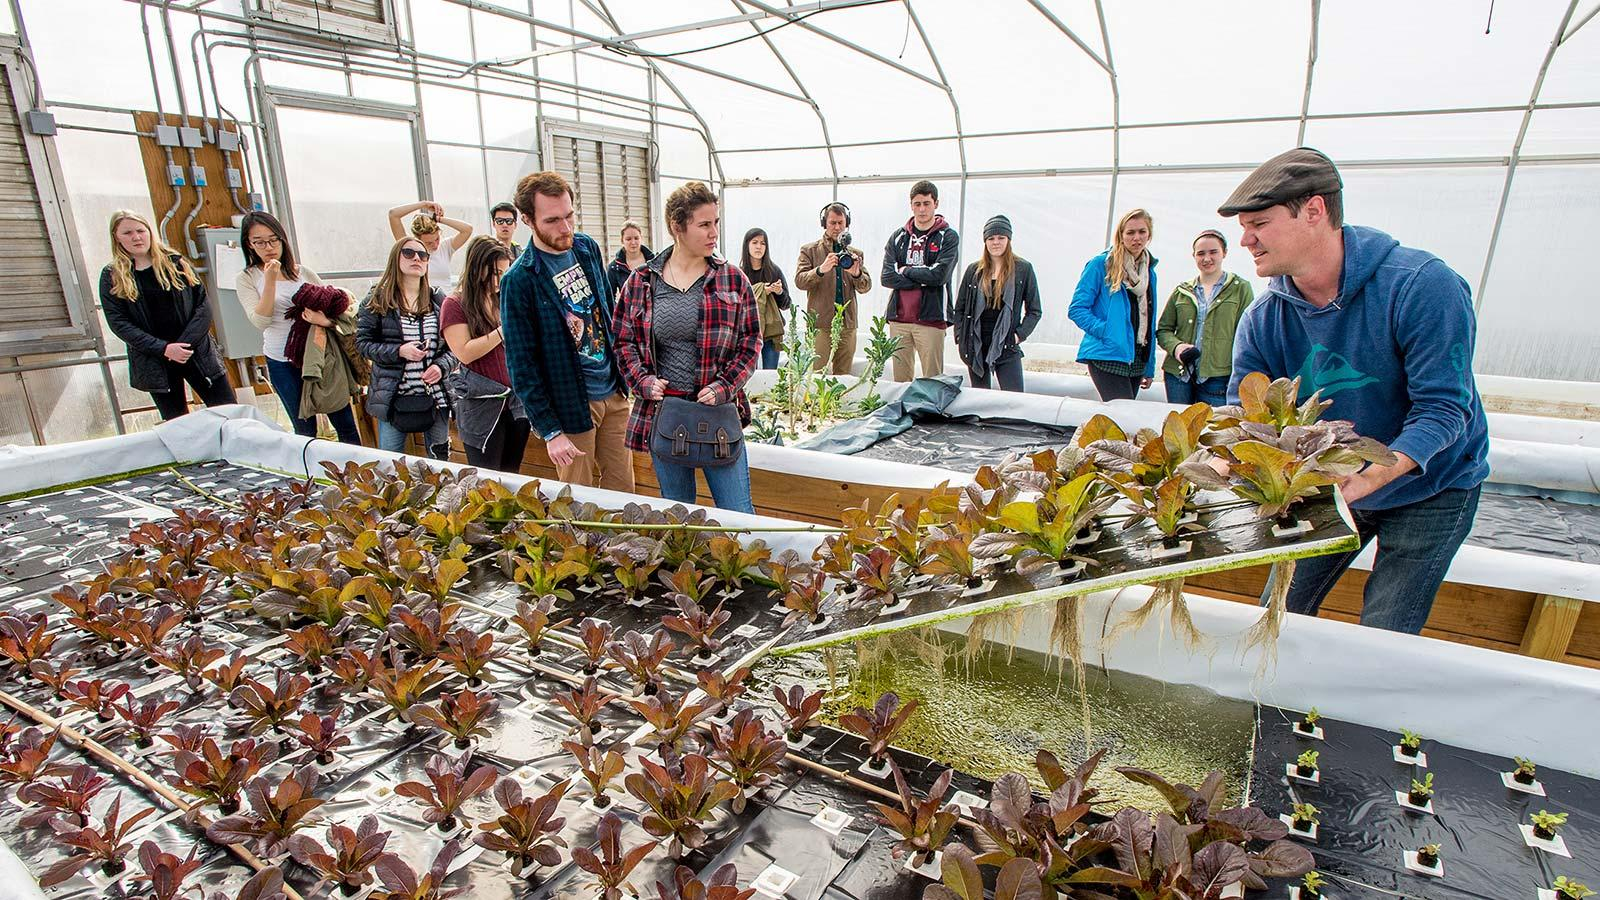 Owner of the Aqua Dulce urban organic farm and aquaculture facility, Jack Waite, shows students how the facility operates.